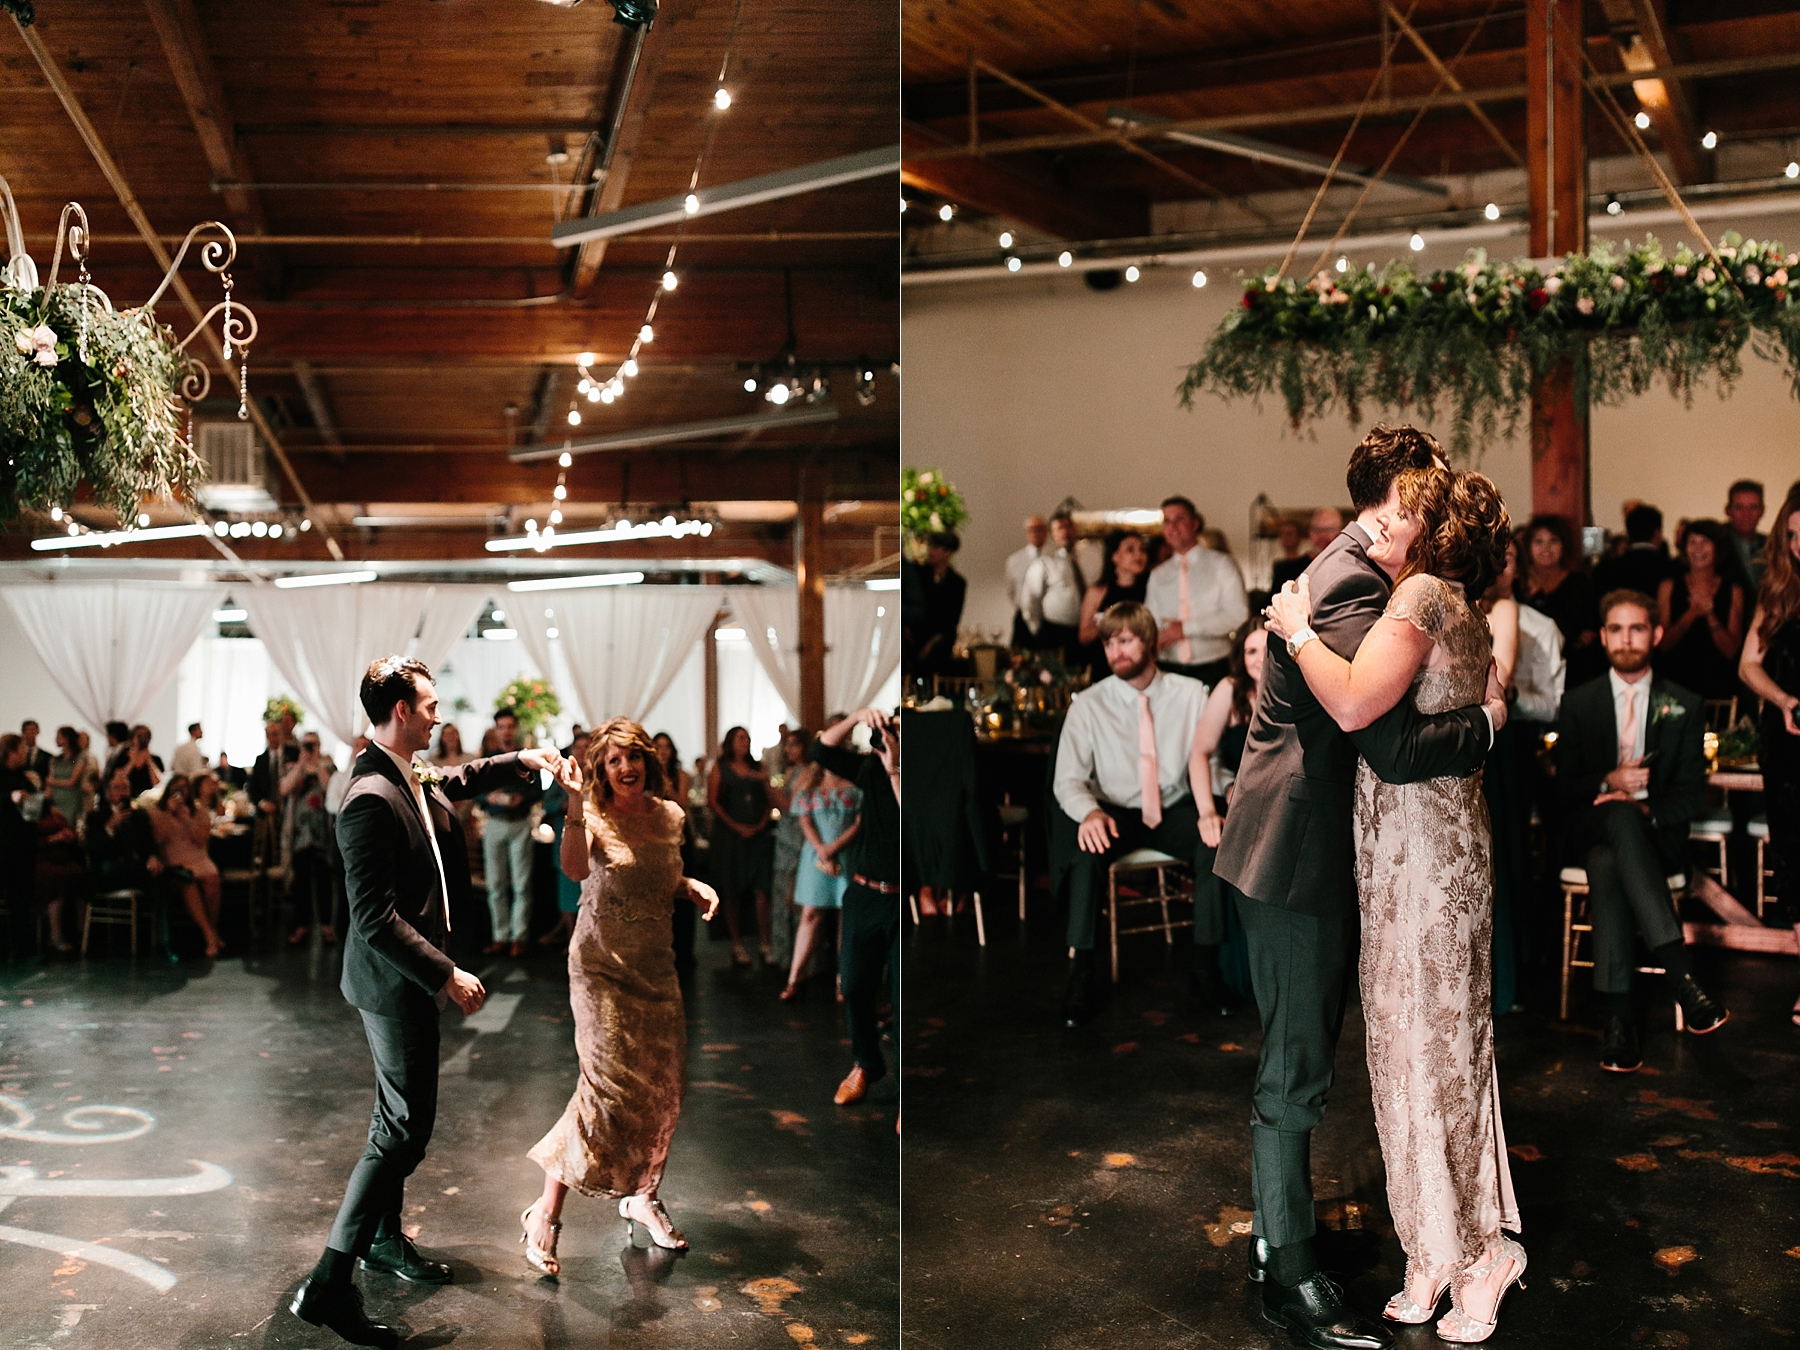 Emily + Caleb _ an elegant, intentional, industrial style wedding with navy + gold accents at 6500 in Dallas, TX by North Texas Wedding Photographer Rachel Meagan Photography _ 153